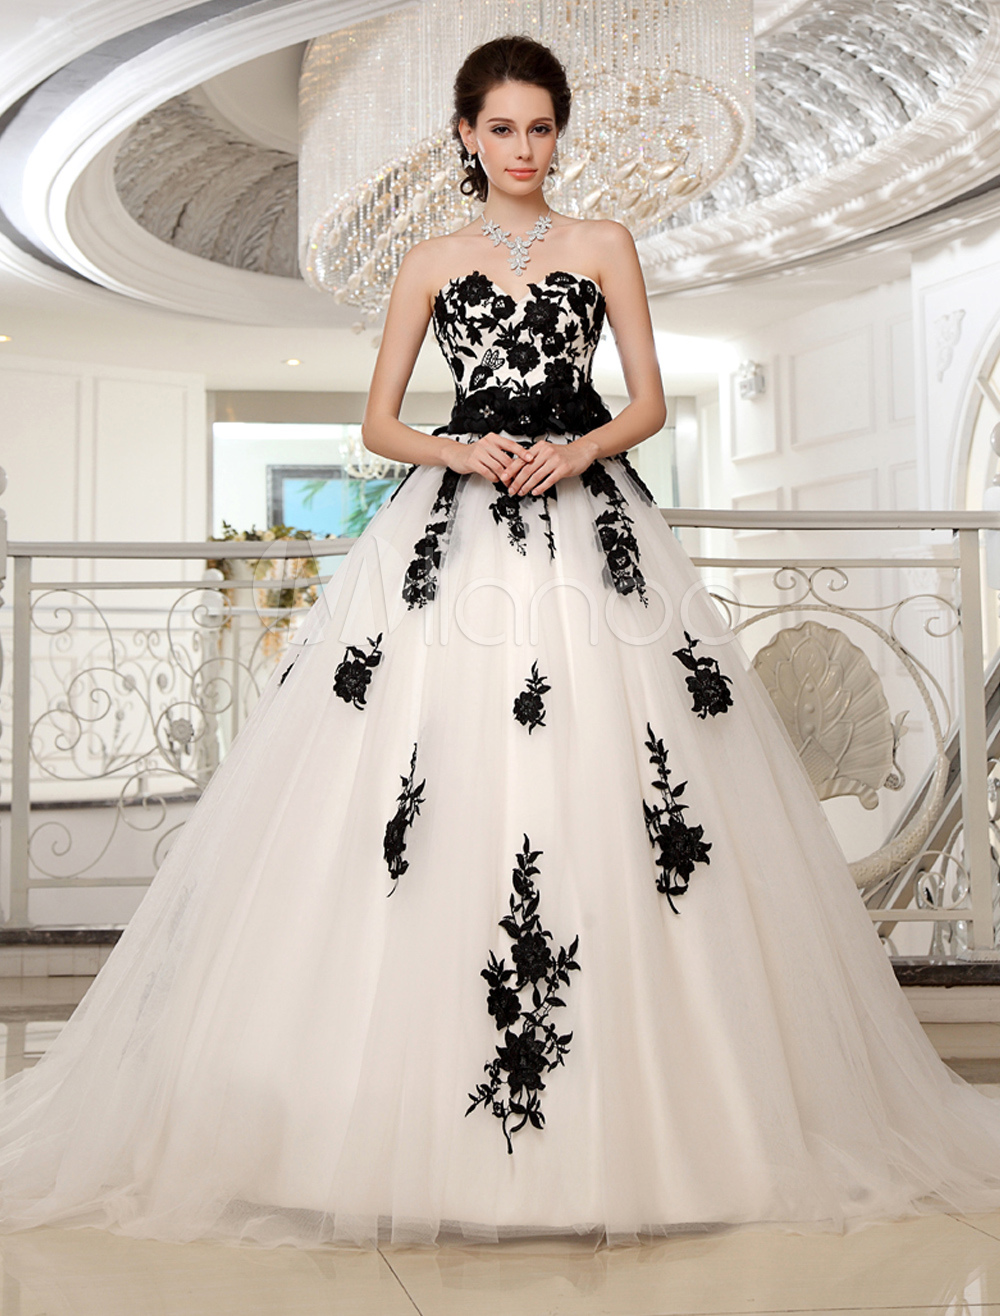 b24125b9a643 Wedding Dresses Strapless Black Bridal Gown Lace Applique Flowers Sash  Beaded Court Train Ivory Tulle Bridal Dress Milanoo - Milanoo.com